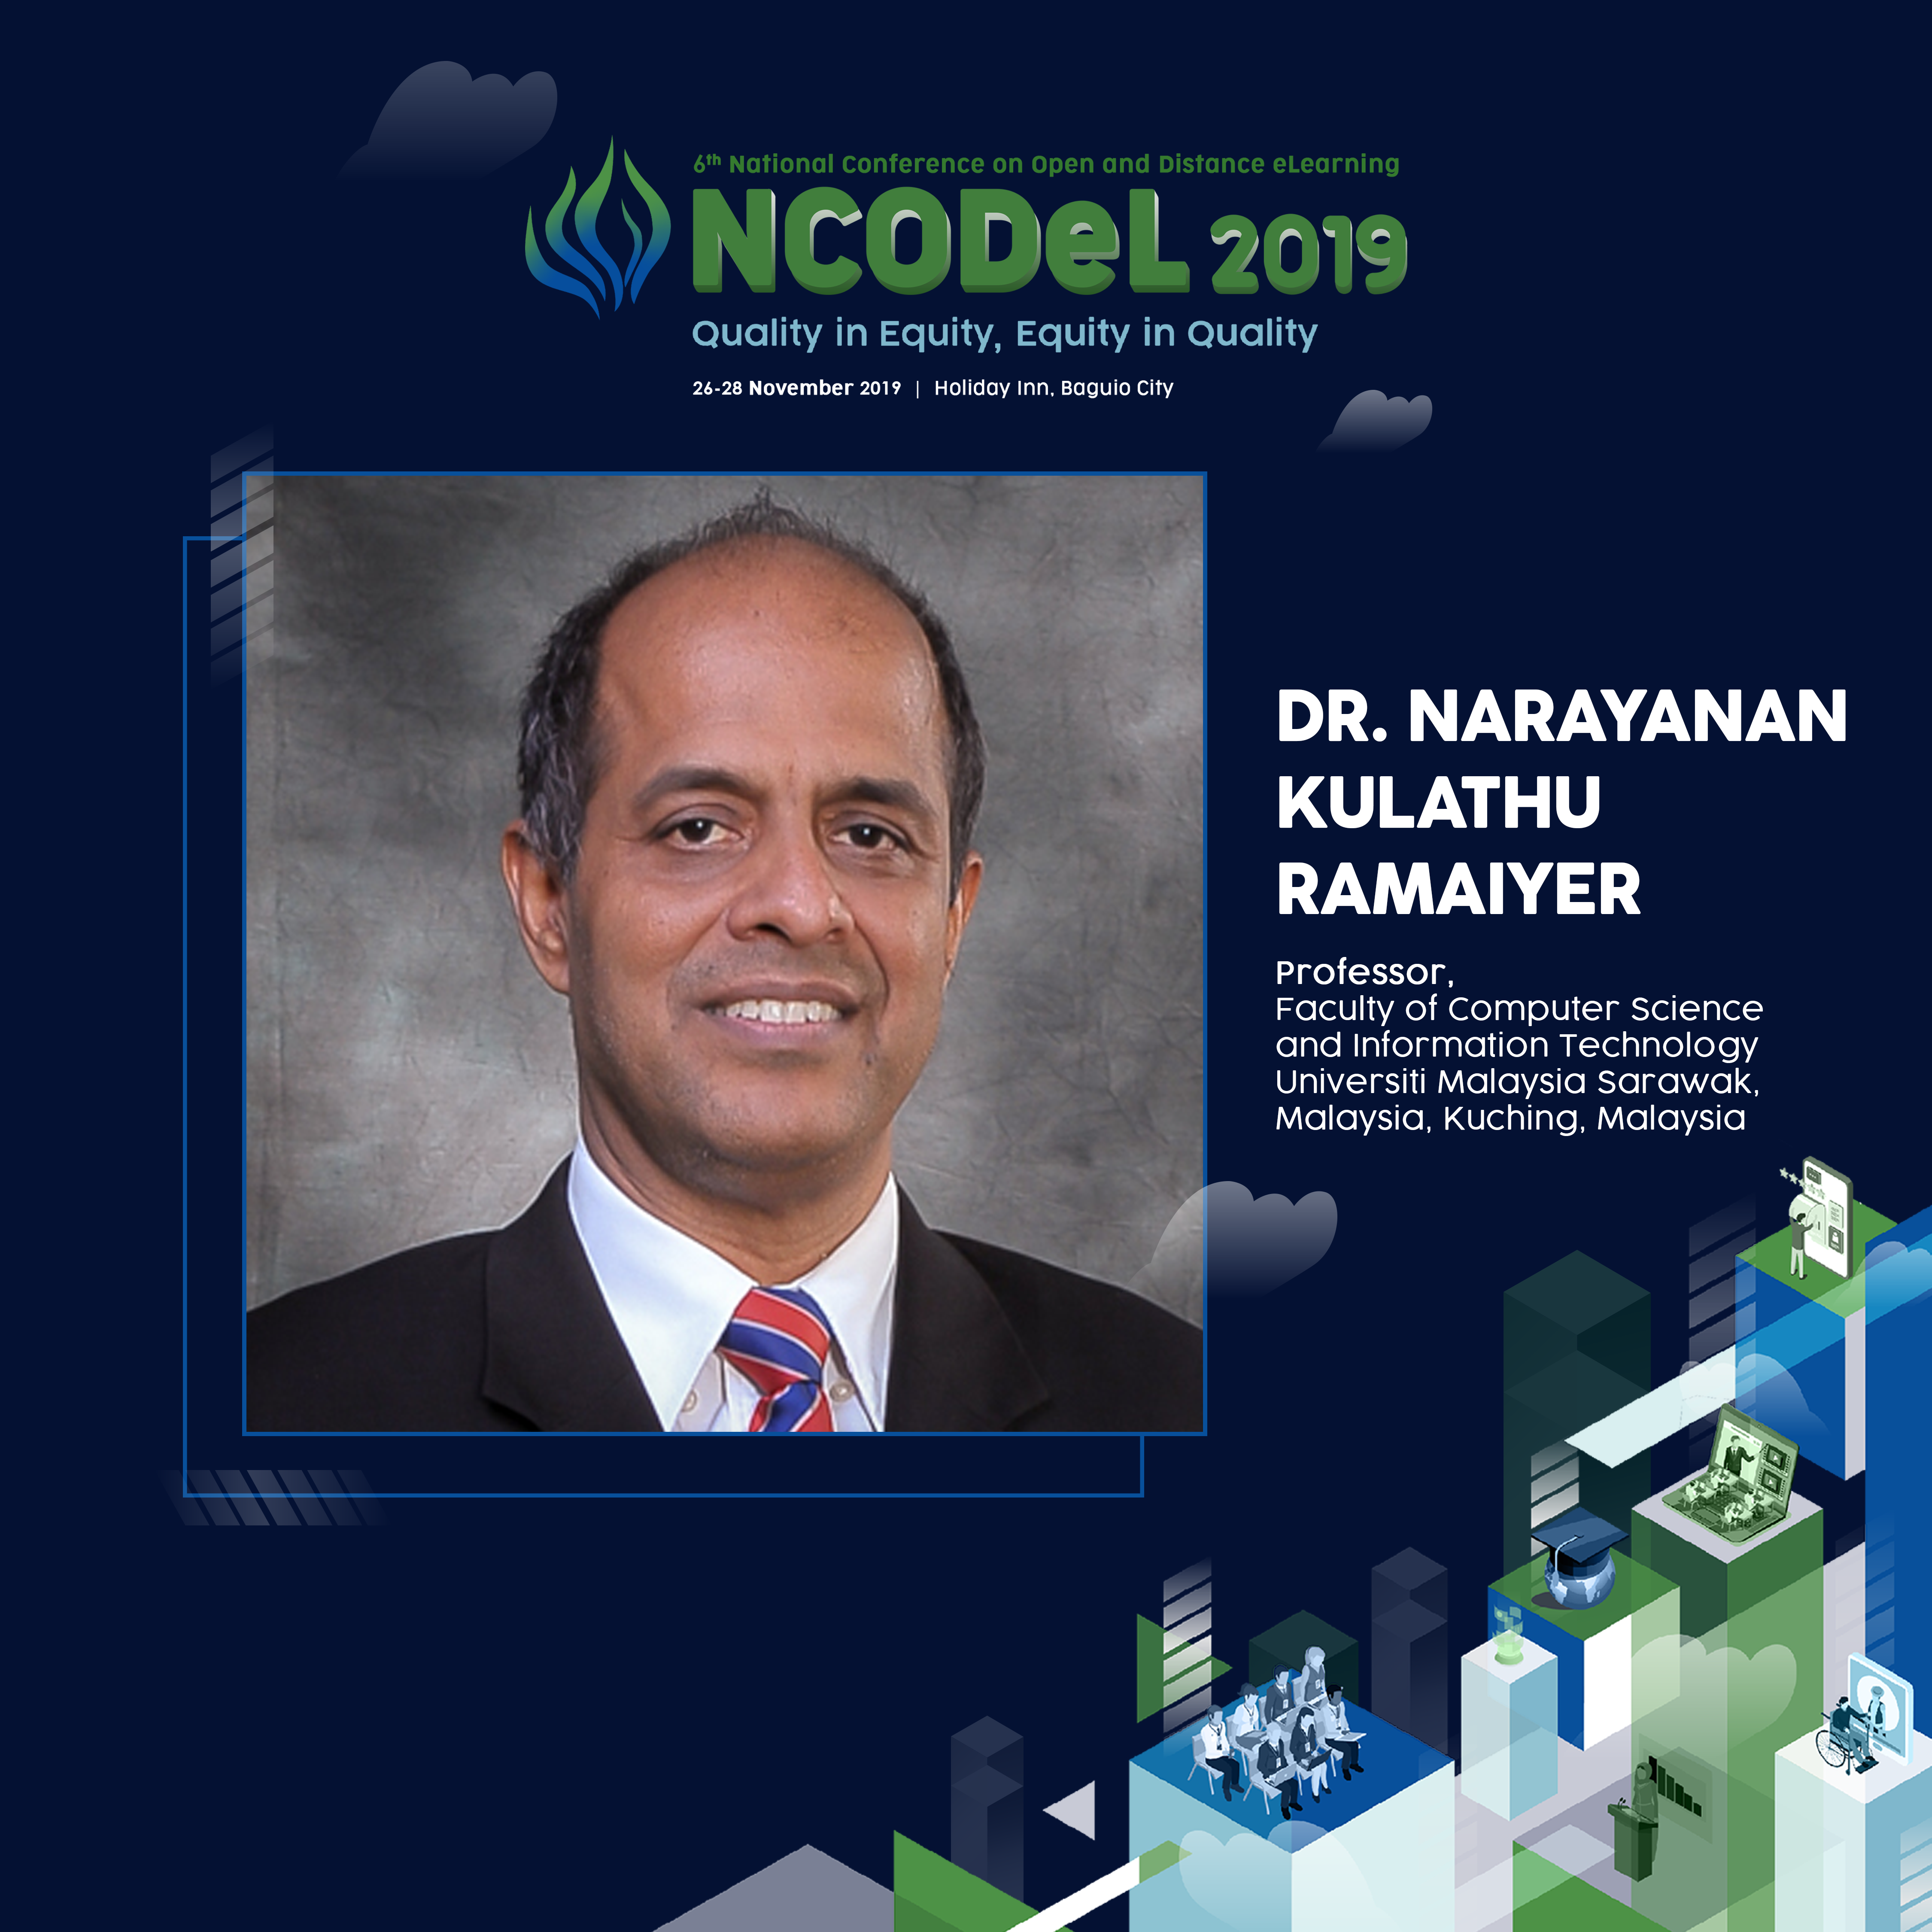 Dr. Narayanan Kulathu Ramaiyer will be one of the speakers at the NCODeL 2019.